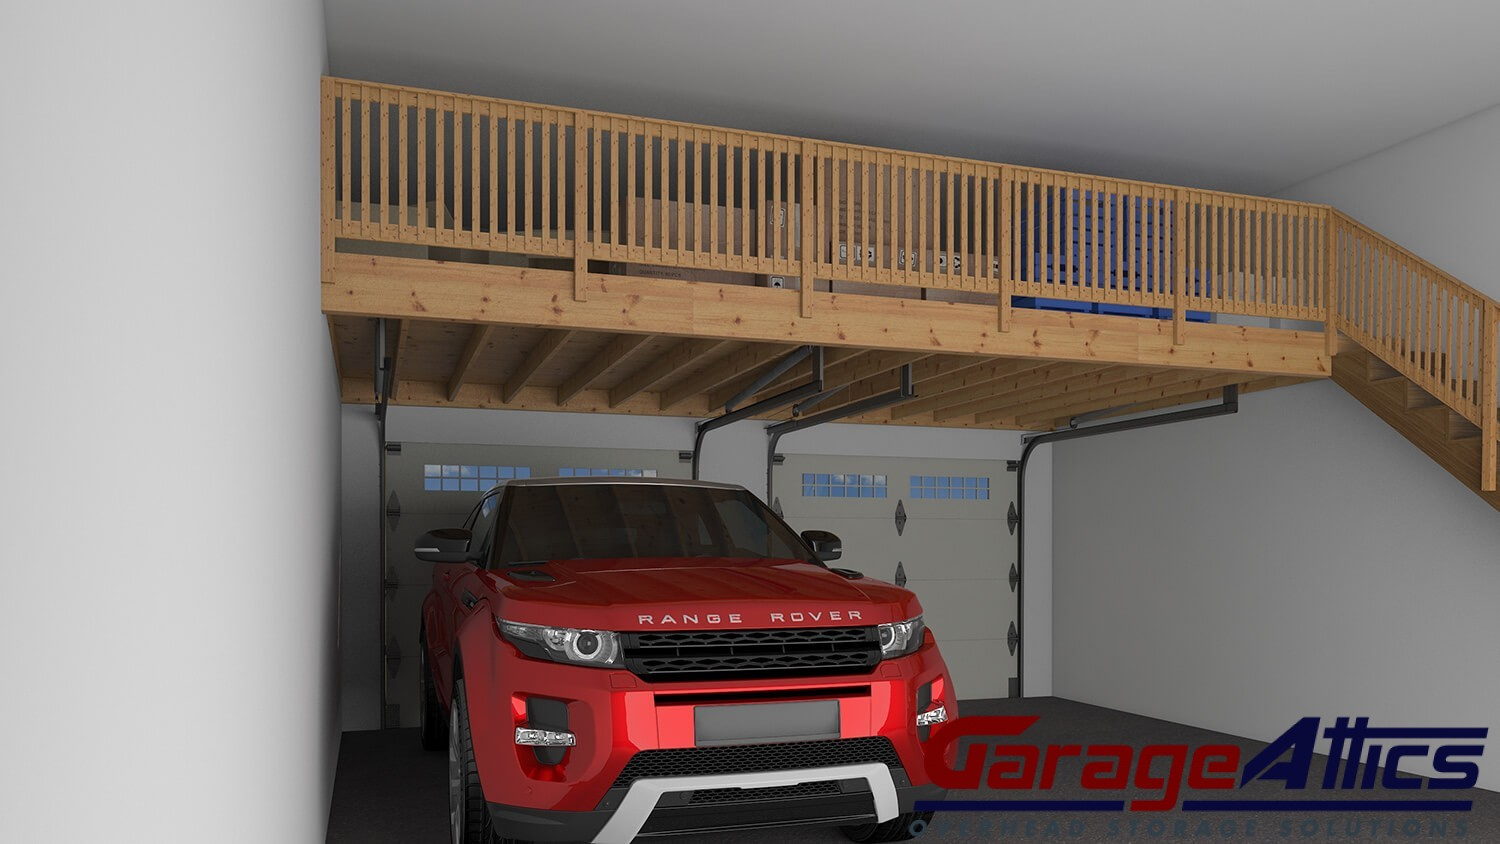 garage storage ideas custom overhead storage lofts custom built in shelving ideas home design ideas